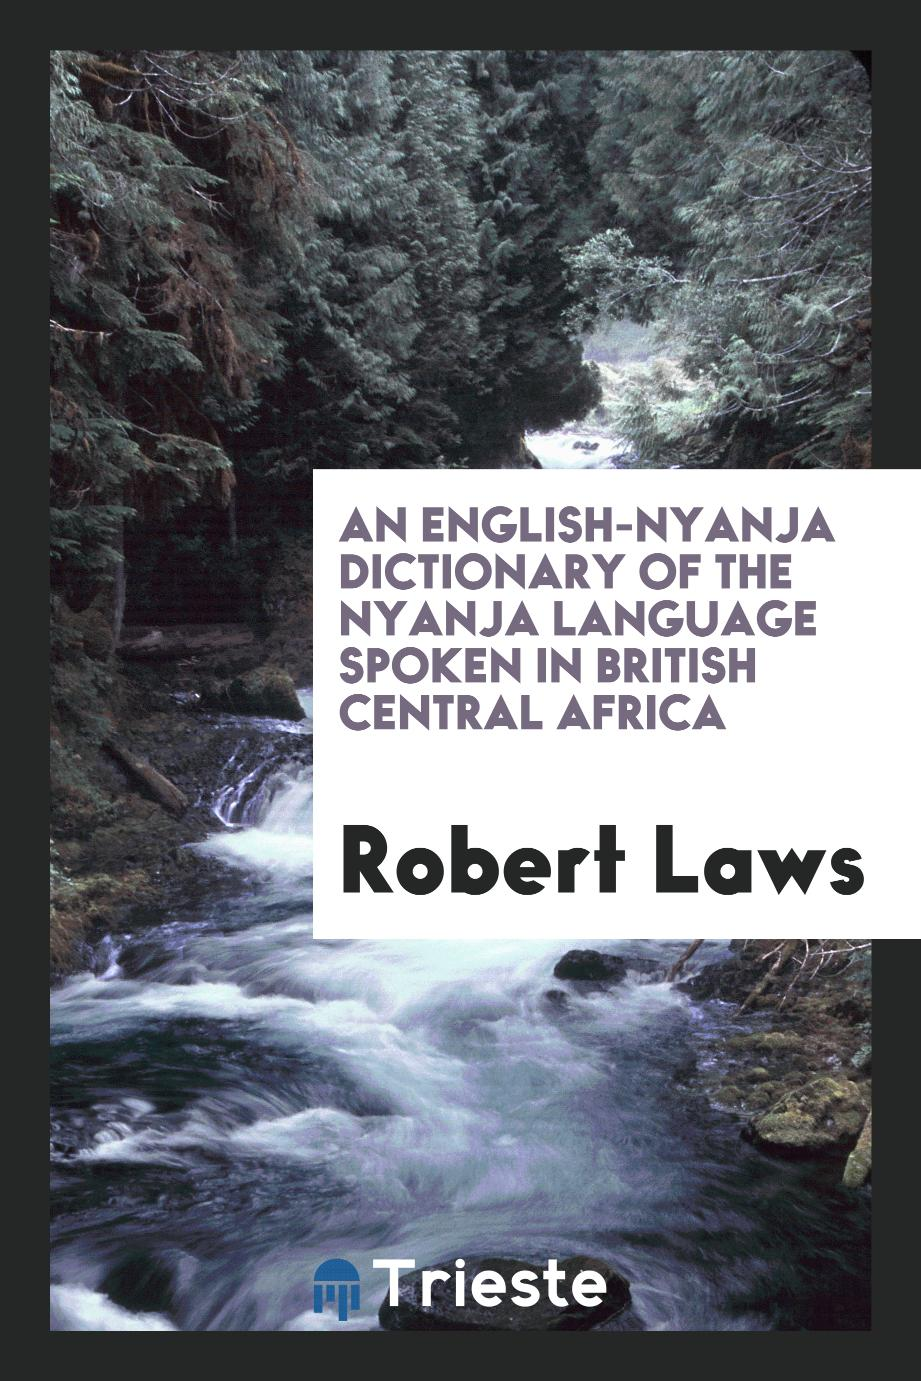 An English-Nyanja Dictionary of the Nyanja Language Spoken in British Central Africa